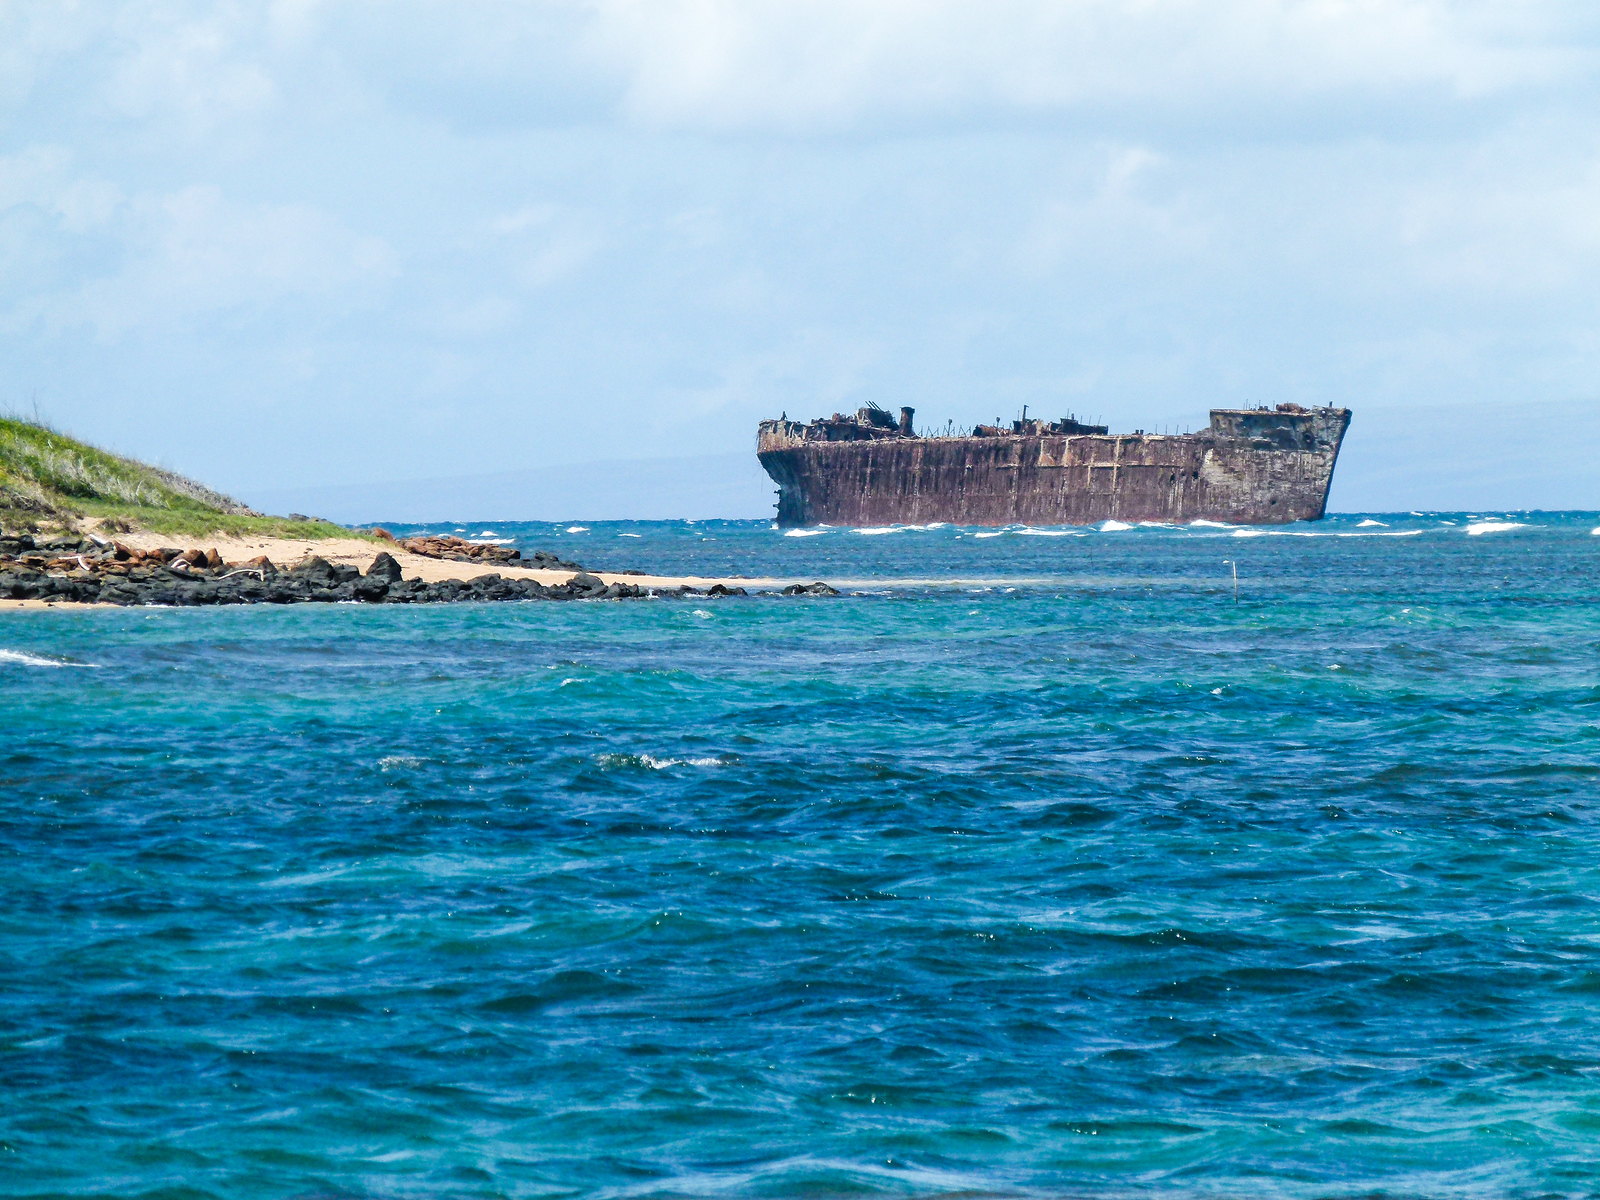 A shipwreck rests in the blue Pacific Ocean off the coast of Lanai.